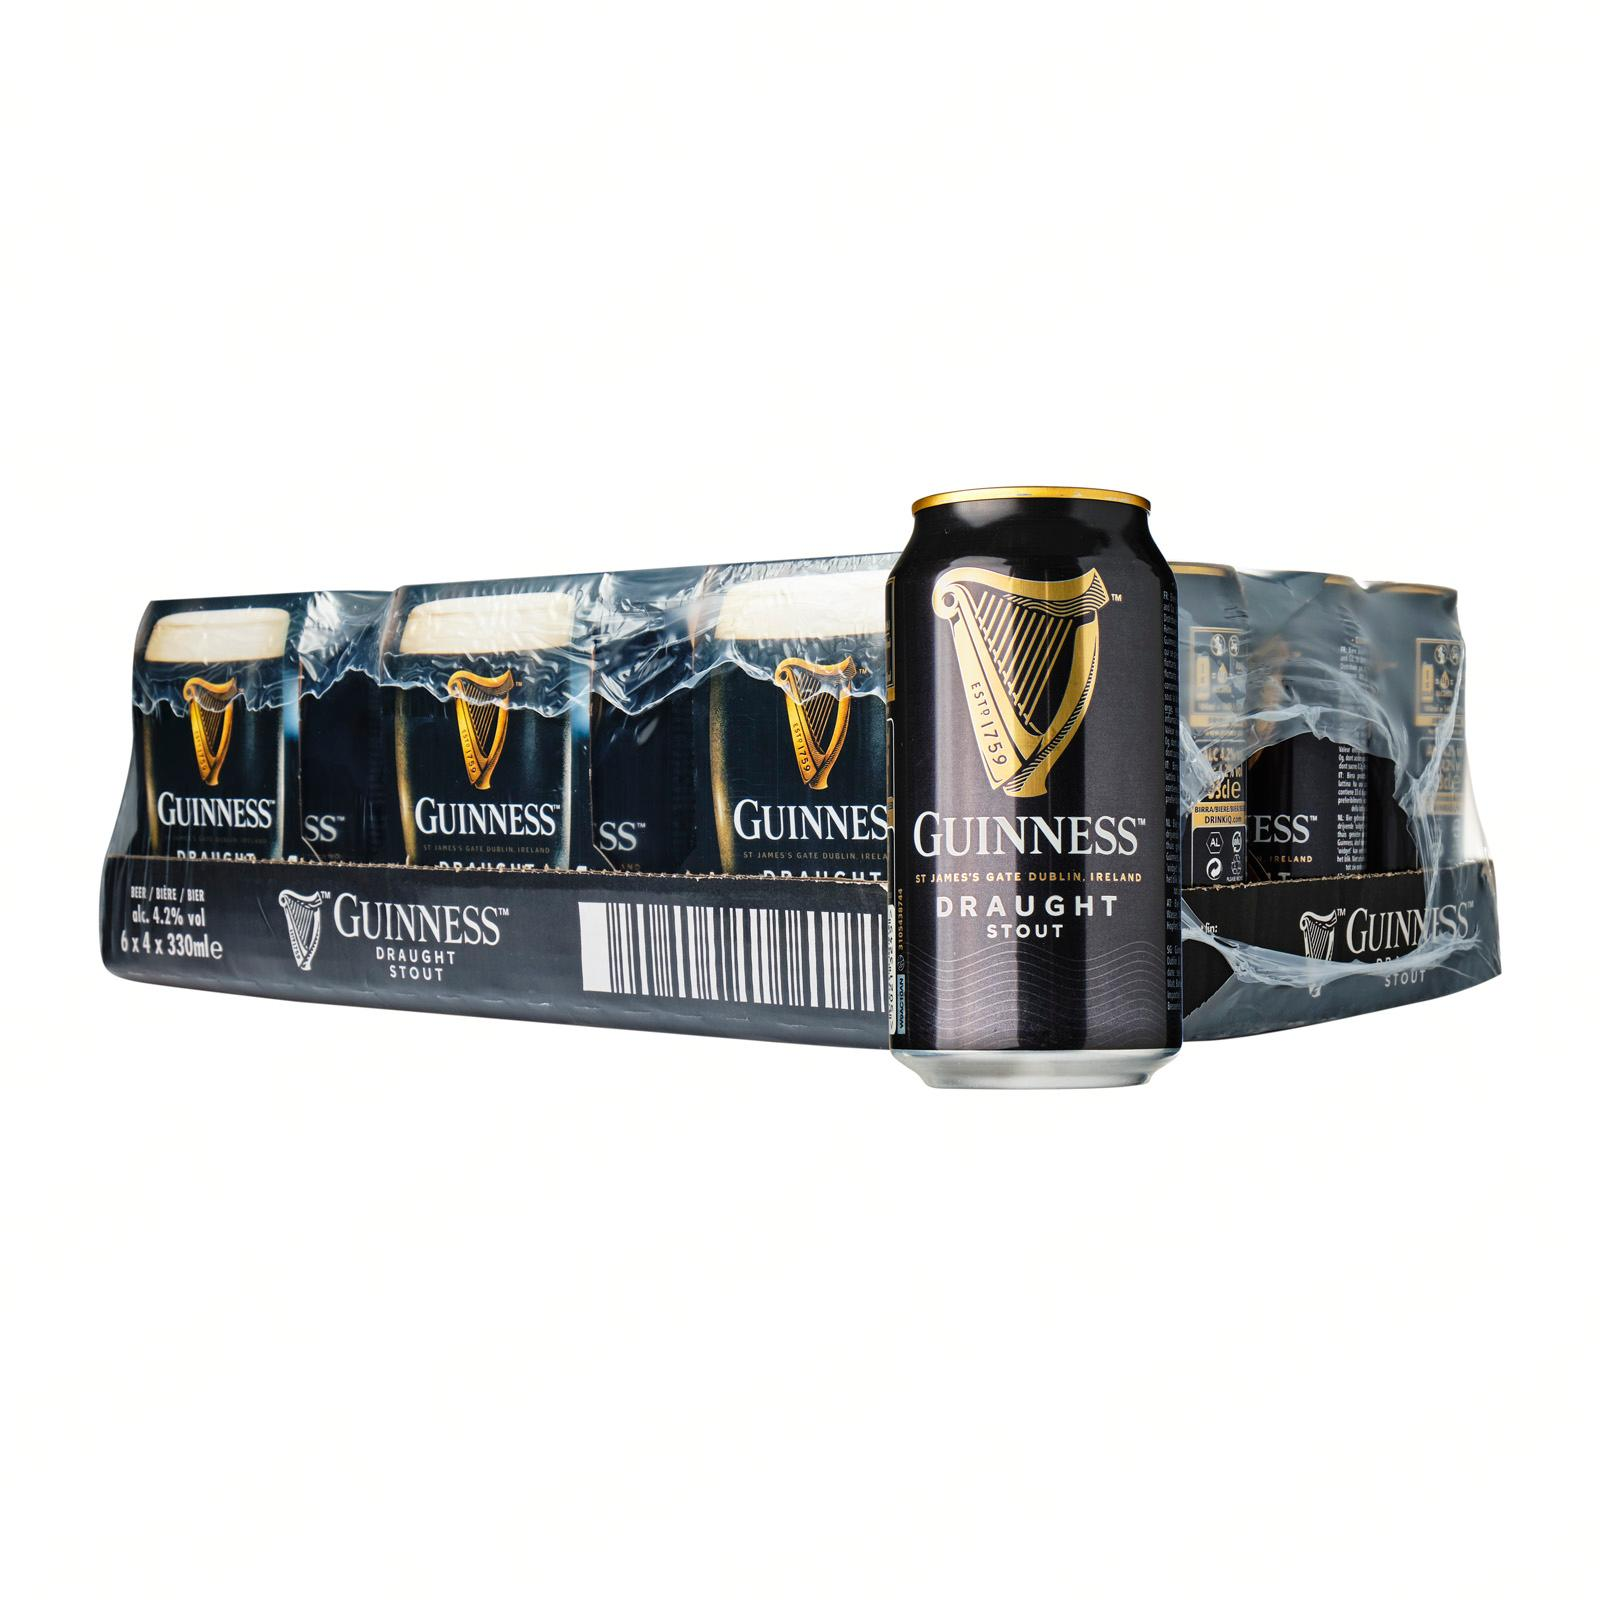 Guinness Draught Stout Can 24 x 330ml